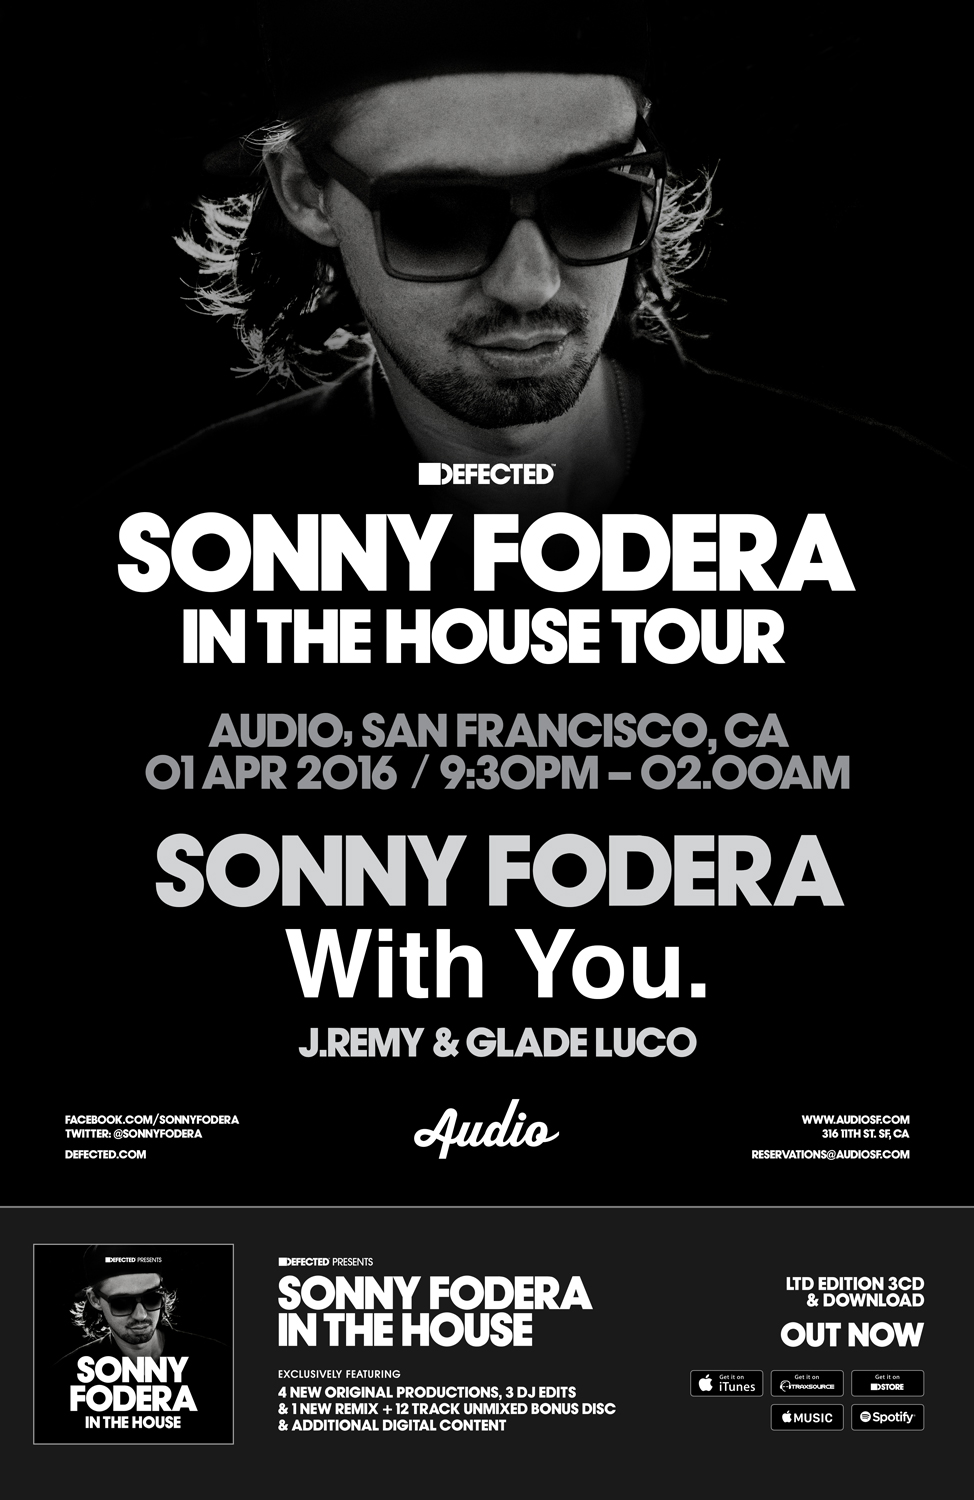 04-01-16 Audio Sonny Fodera - San Francisco.jpg